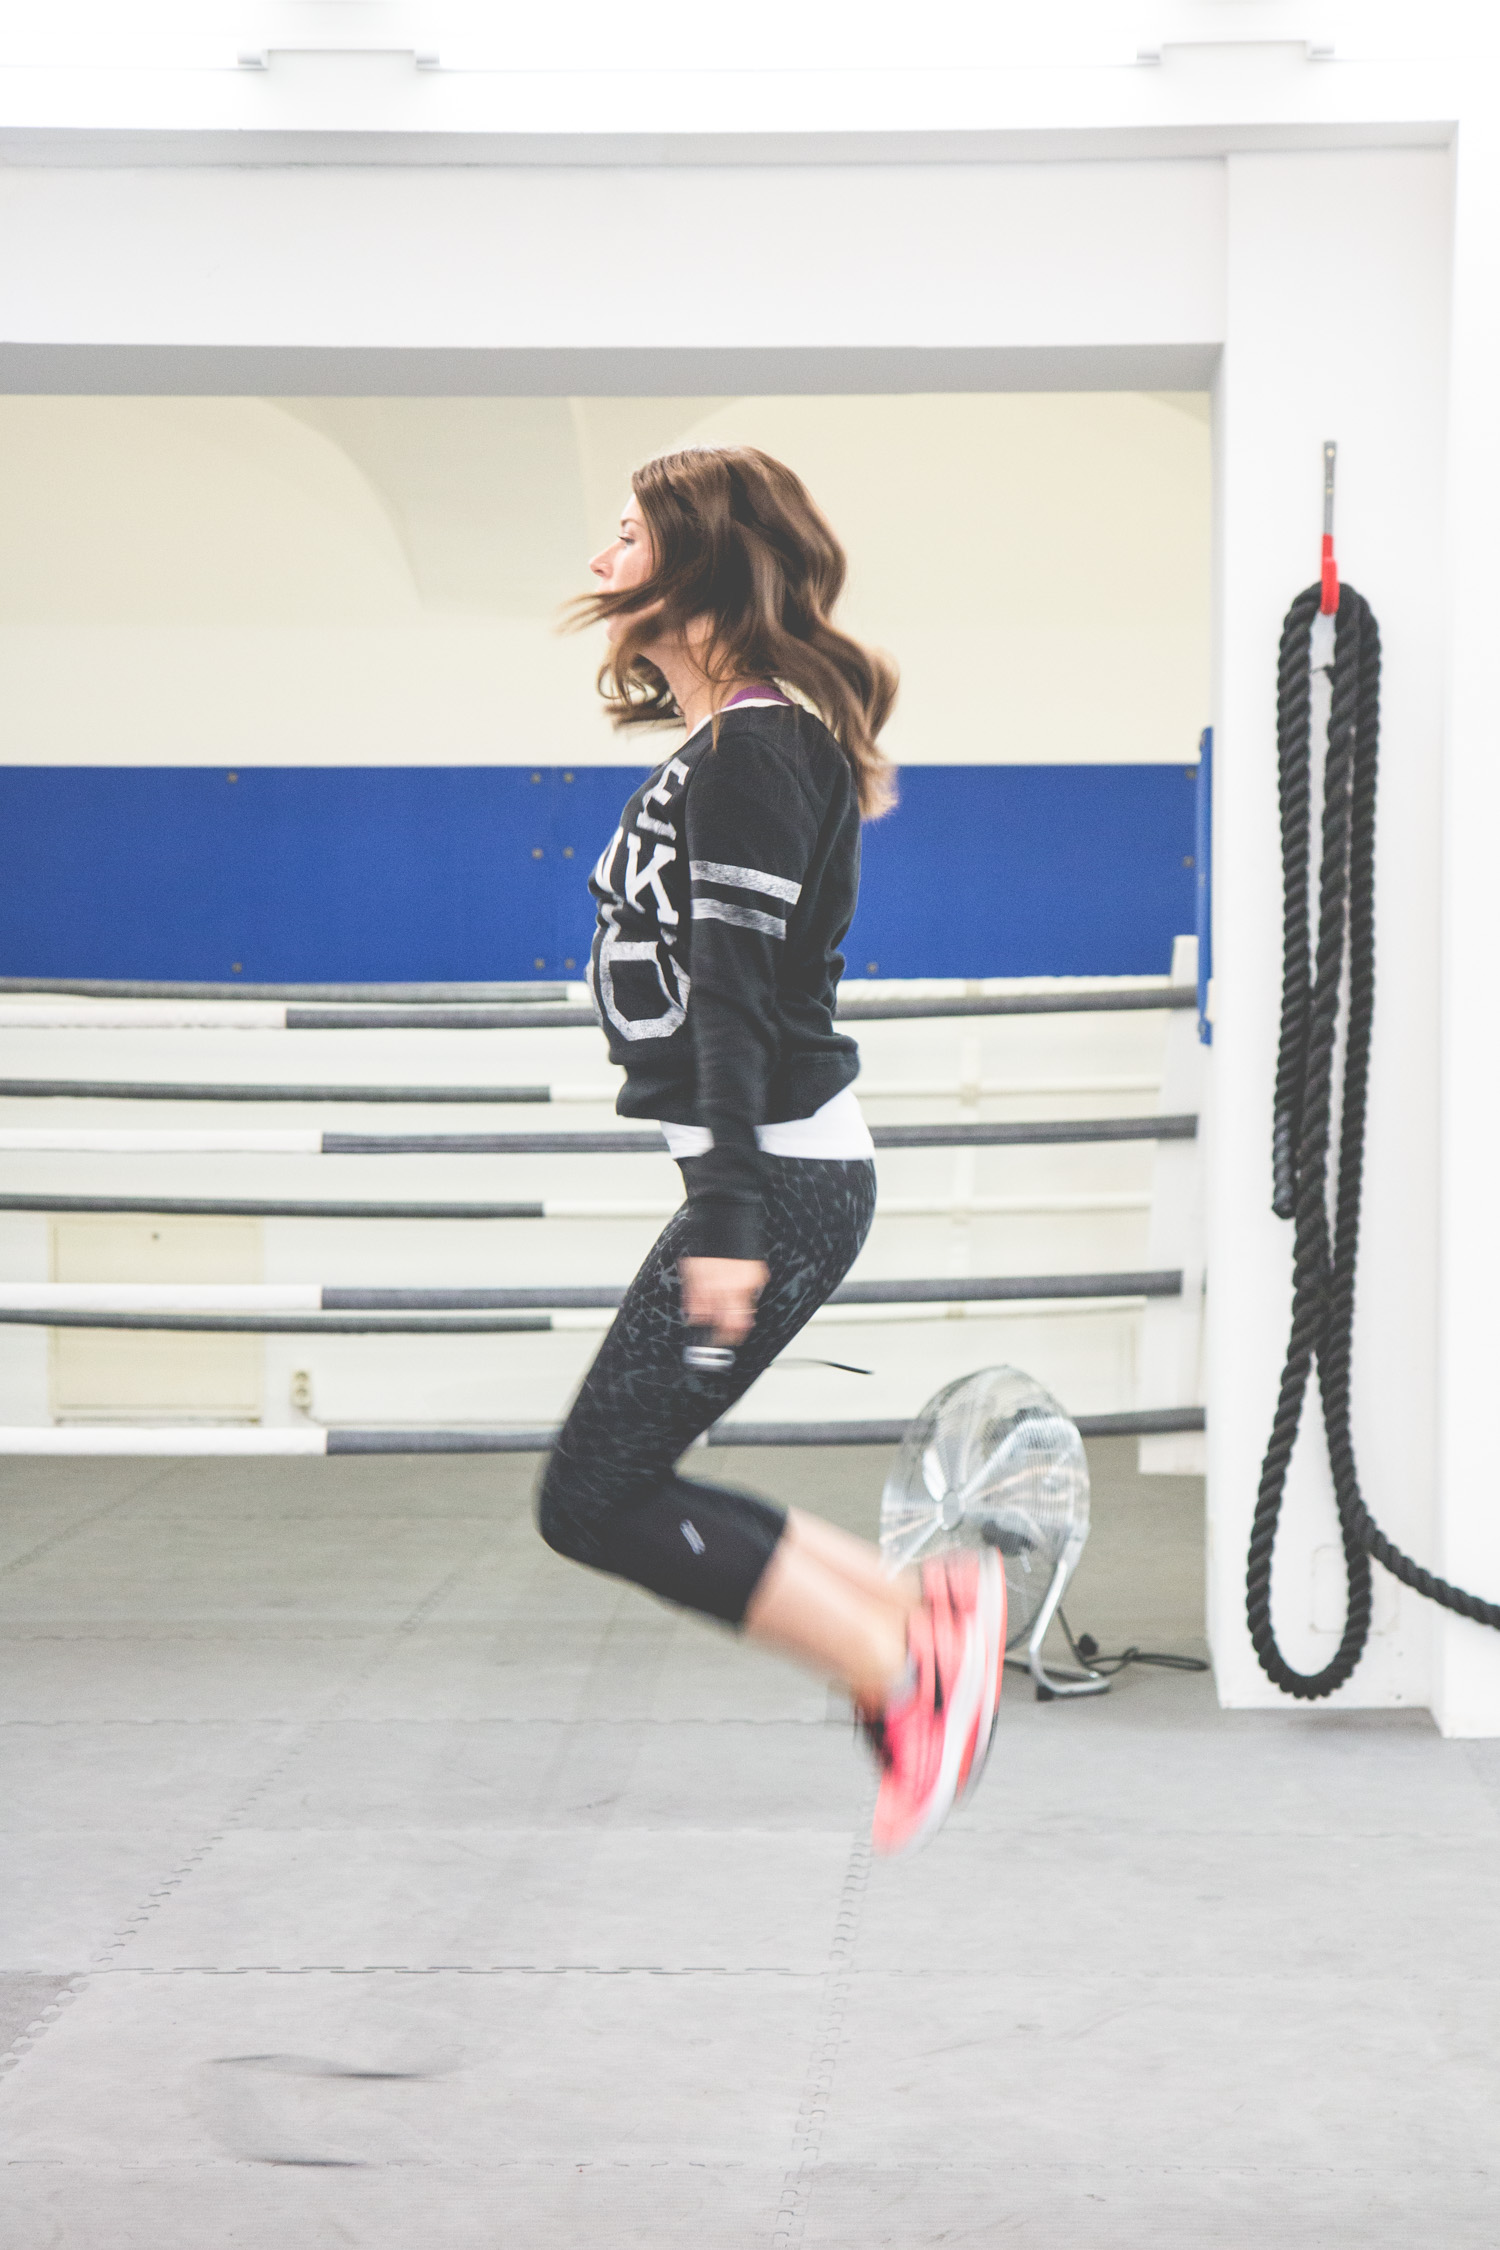 Boxing Fitness at Backyard Vienna | The Daily Dose